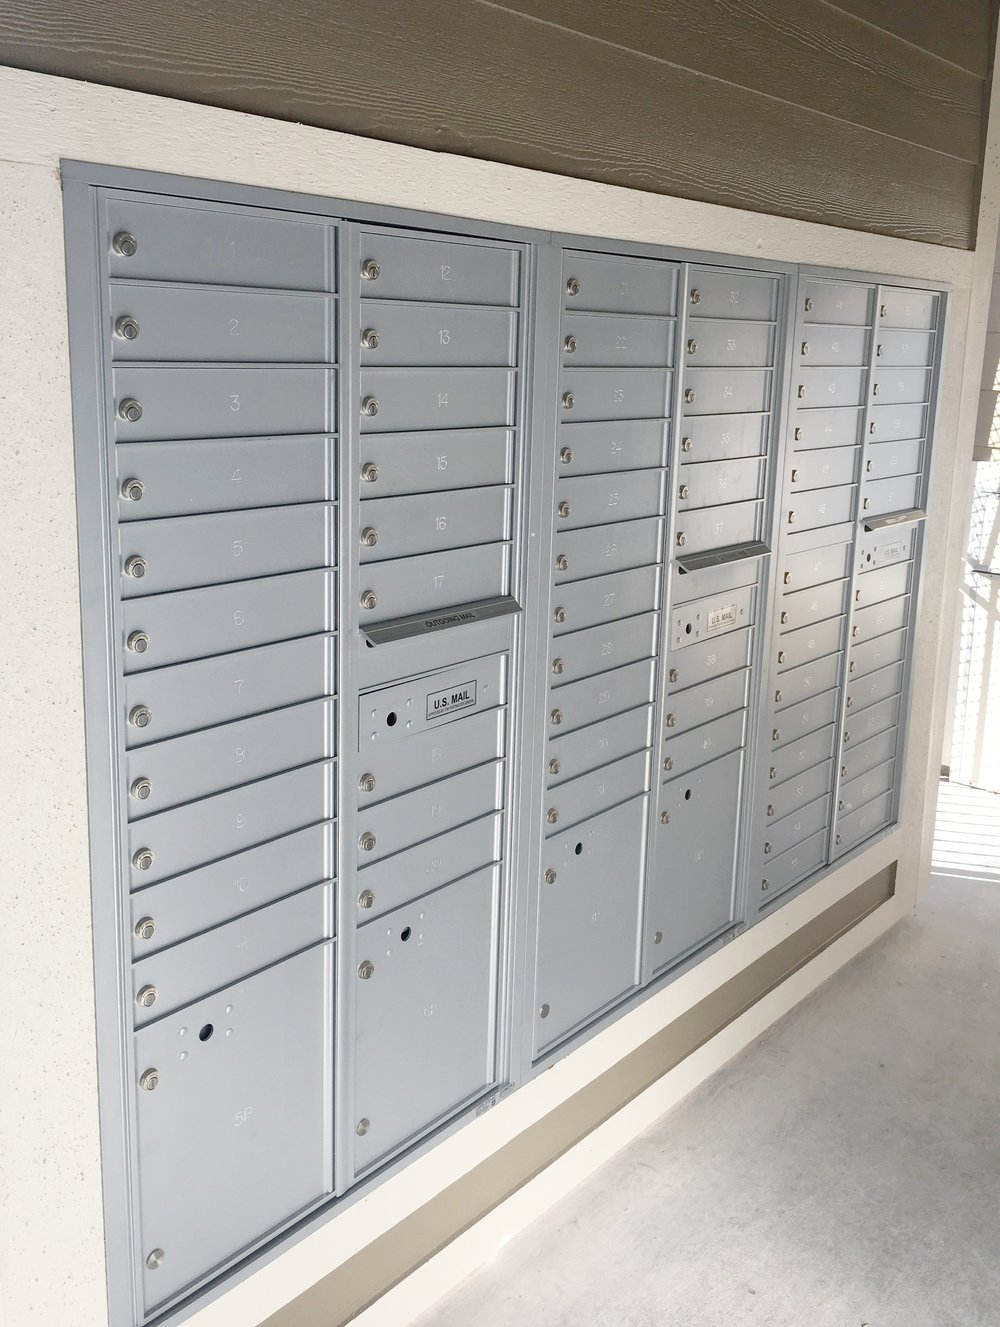 USPS Approved Postal Products Offered: - Cluster Box Unit & Outdoor Parcel Lockers4C Mailboxes & 4C Kiosk StationsHorizontal 4B+ Replacement MailboxesVertical Replacement MailboxesCollection Boxes, Mail Drops, Directories, Key Keepers, Chimes and Parts